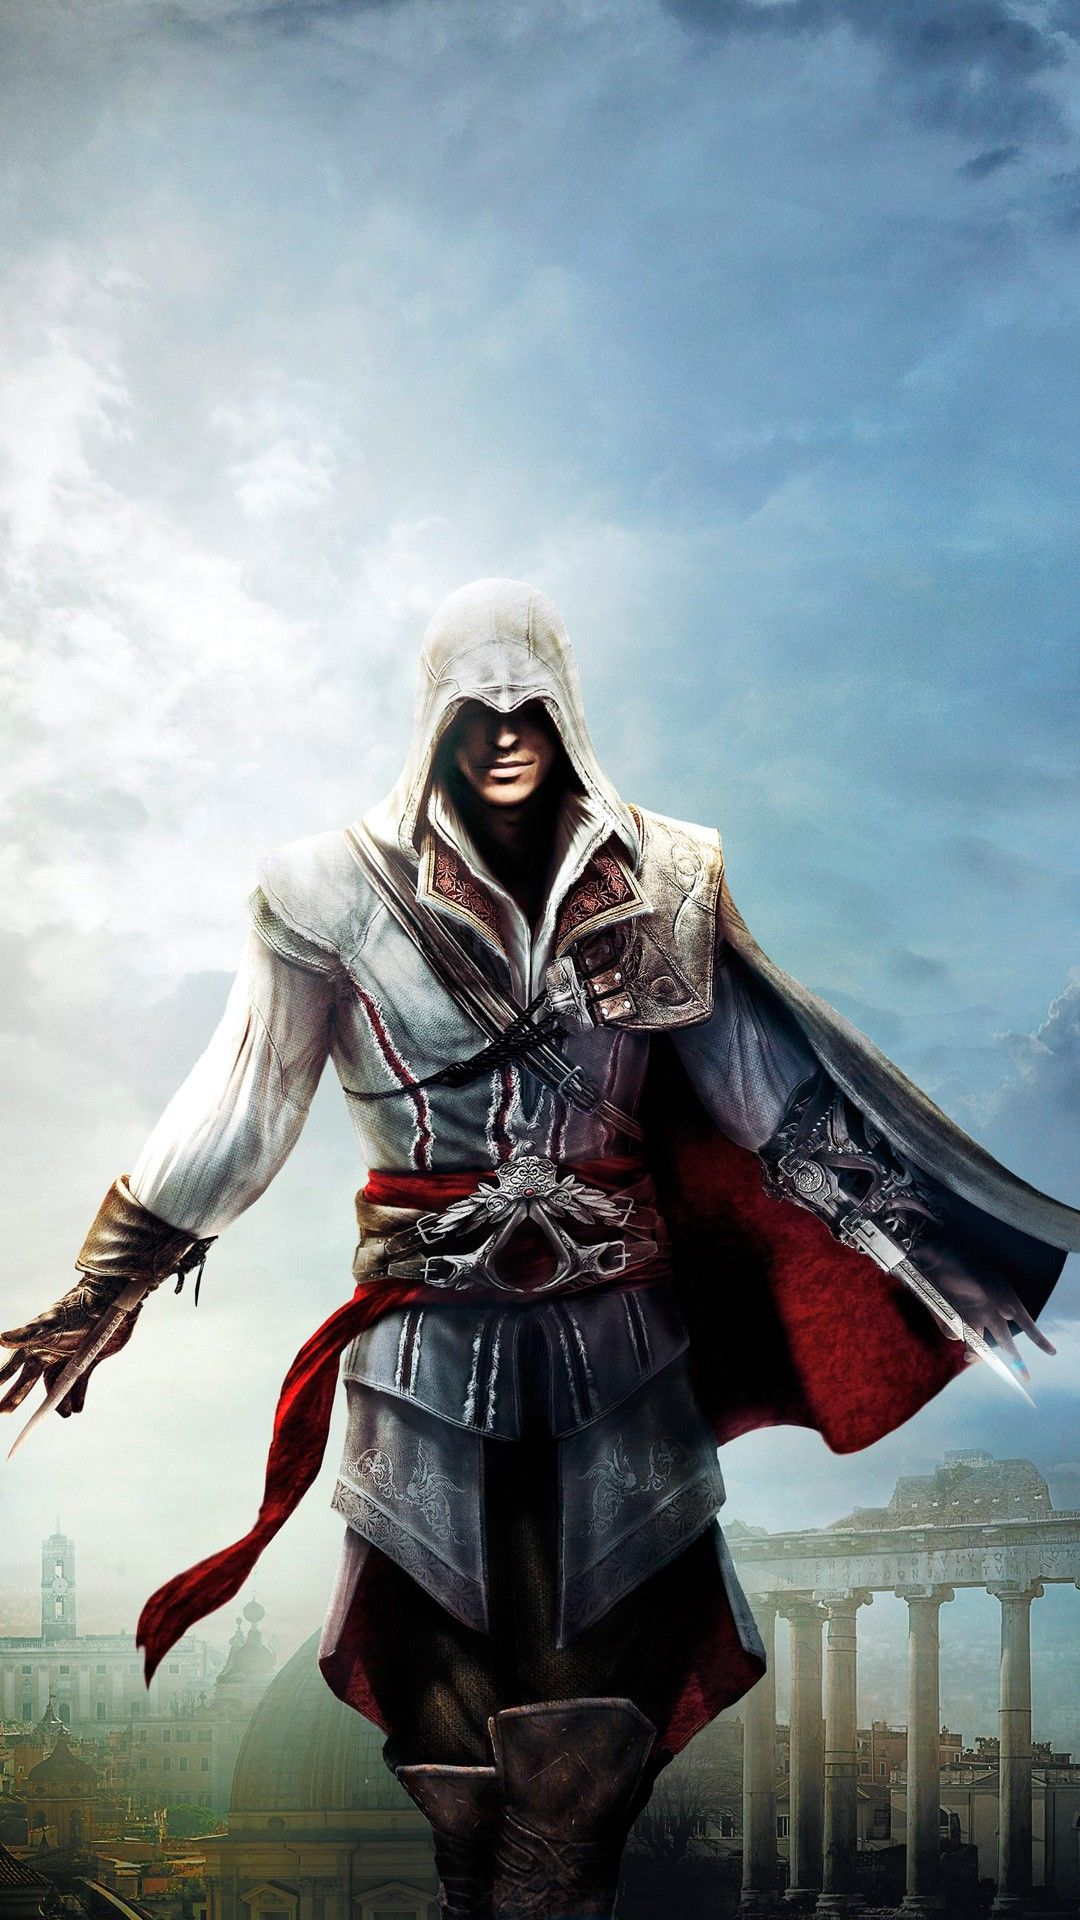 Assassins Creed Wallpapers High Quality Hupages Download Iphone Wallpapers Assassin S Creed Assassins Creed Assassin S Creed Wallpaper